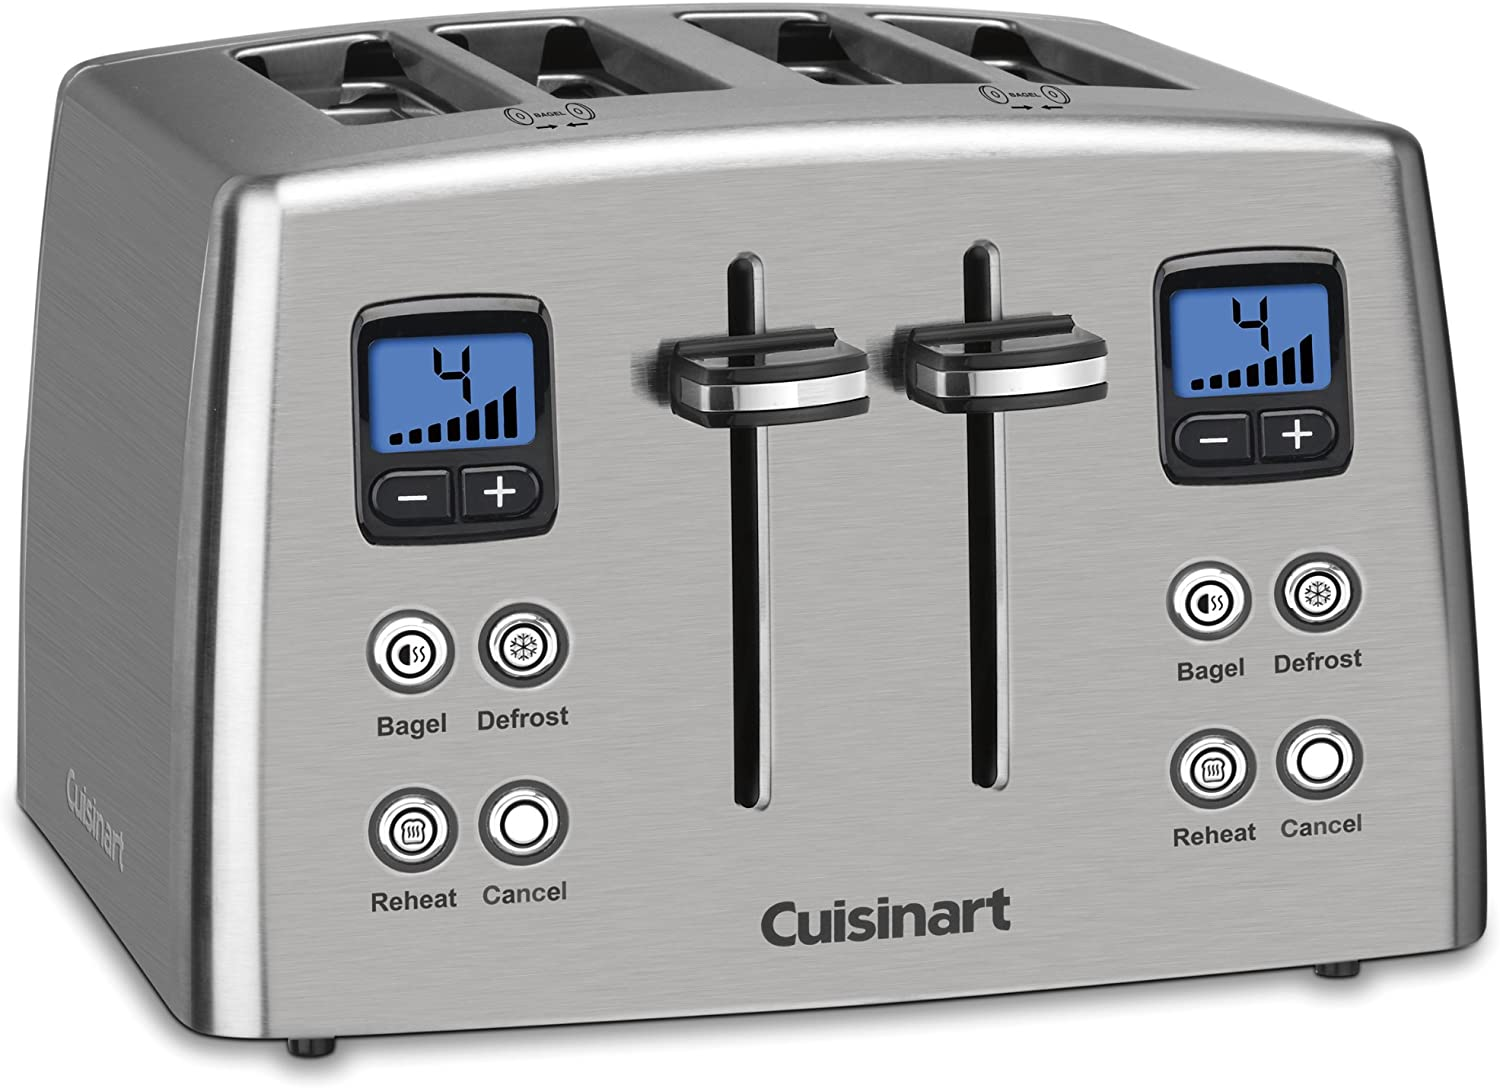 Cuisinart CPT-435 Countdown 4-Slice Stainless Steel Toaster